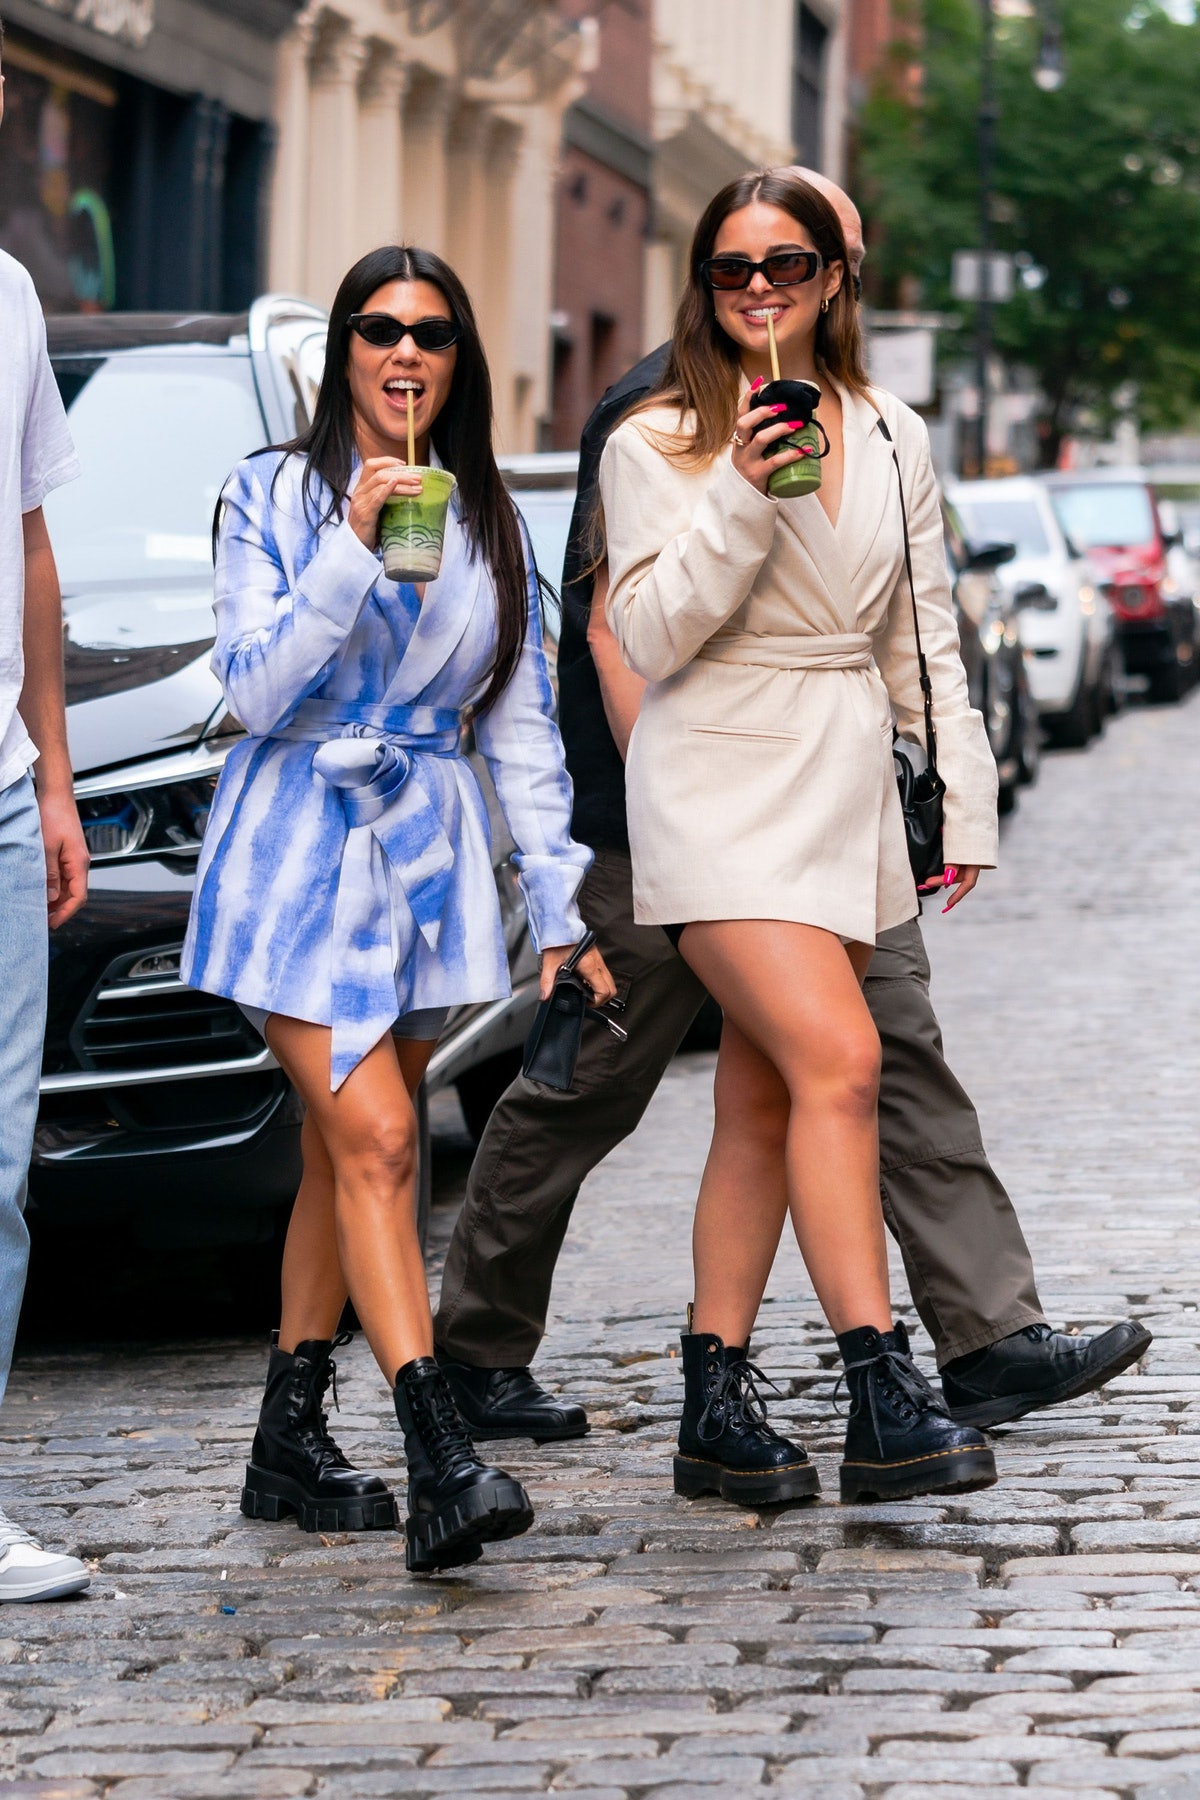 NEW YORK, NEW YORK - OCTOBER 10: Kourtney Kardashian (L) and Addison Rae are seen in SoHo on October 10, 2020 in New York City. (Photo by Gotham/GC Images)